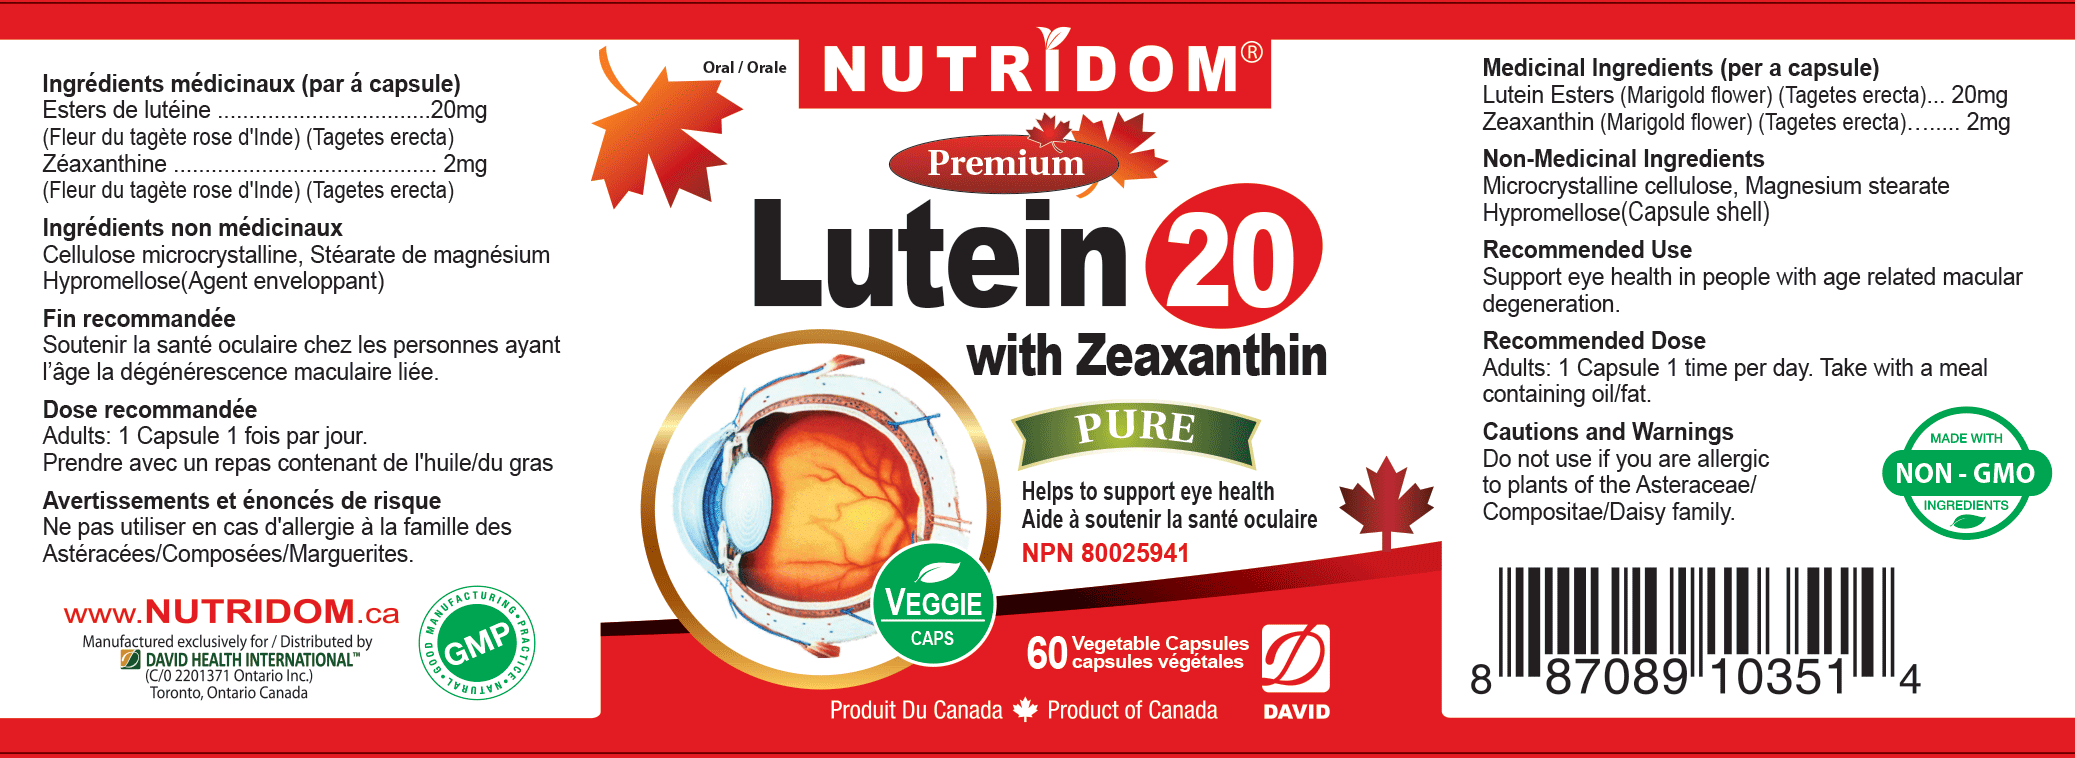 Nutridom Lutein 20 with Zeaxanthin 22 mg 60 Vcaps